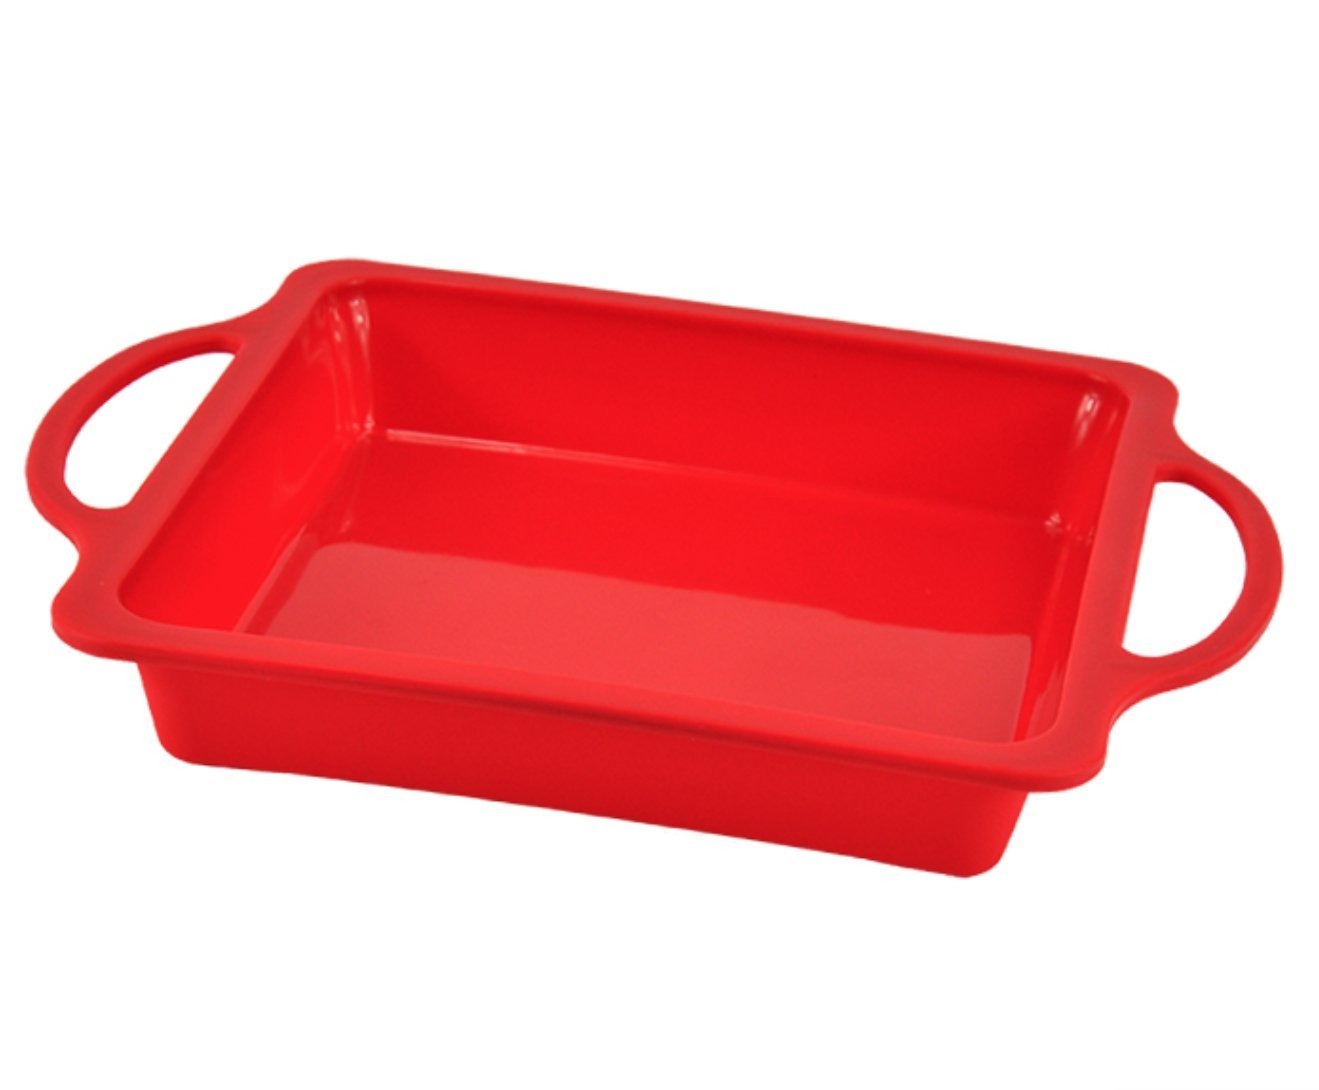 Nonstick Sturdy Handle Square Brownie Cake Baking Pan 8 Inch - Patented Metal Reinforced Silicone Pans - 8x8 Inches Non Stick Caramel Brownies Tray - Bake Boss BPA Free Cakes Mold - Dishwasher Safe